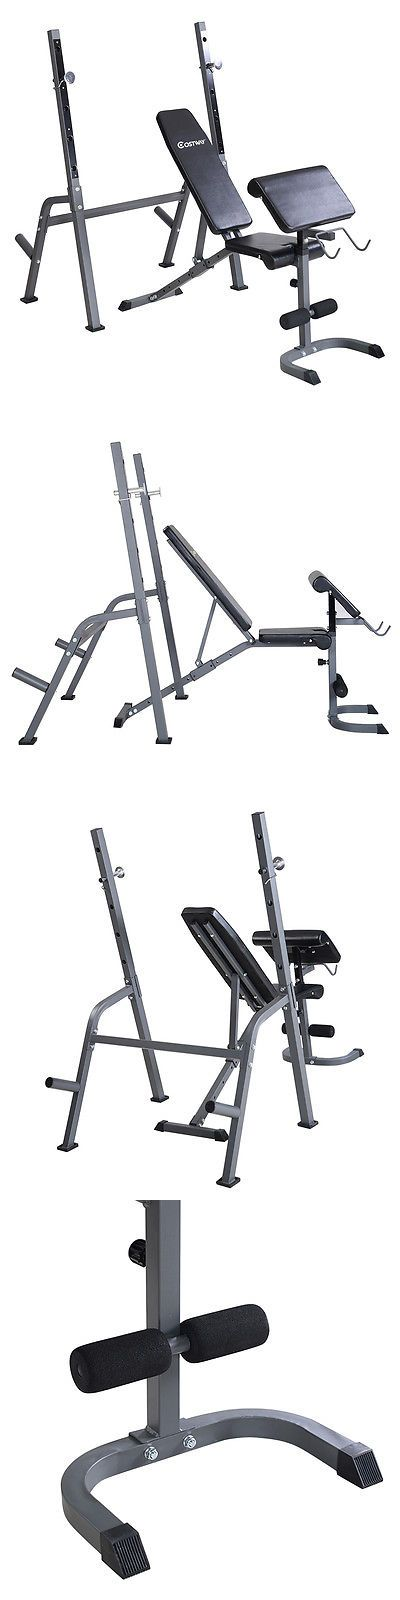 Benches 15281: Costway Adjustable Weight Lift Bench+Rack Set Fitness Barbell Dumbbell Workout BUY IT NOW ONLY: $99.99